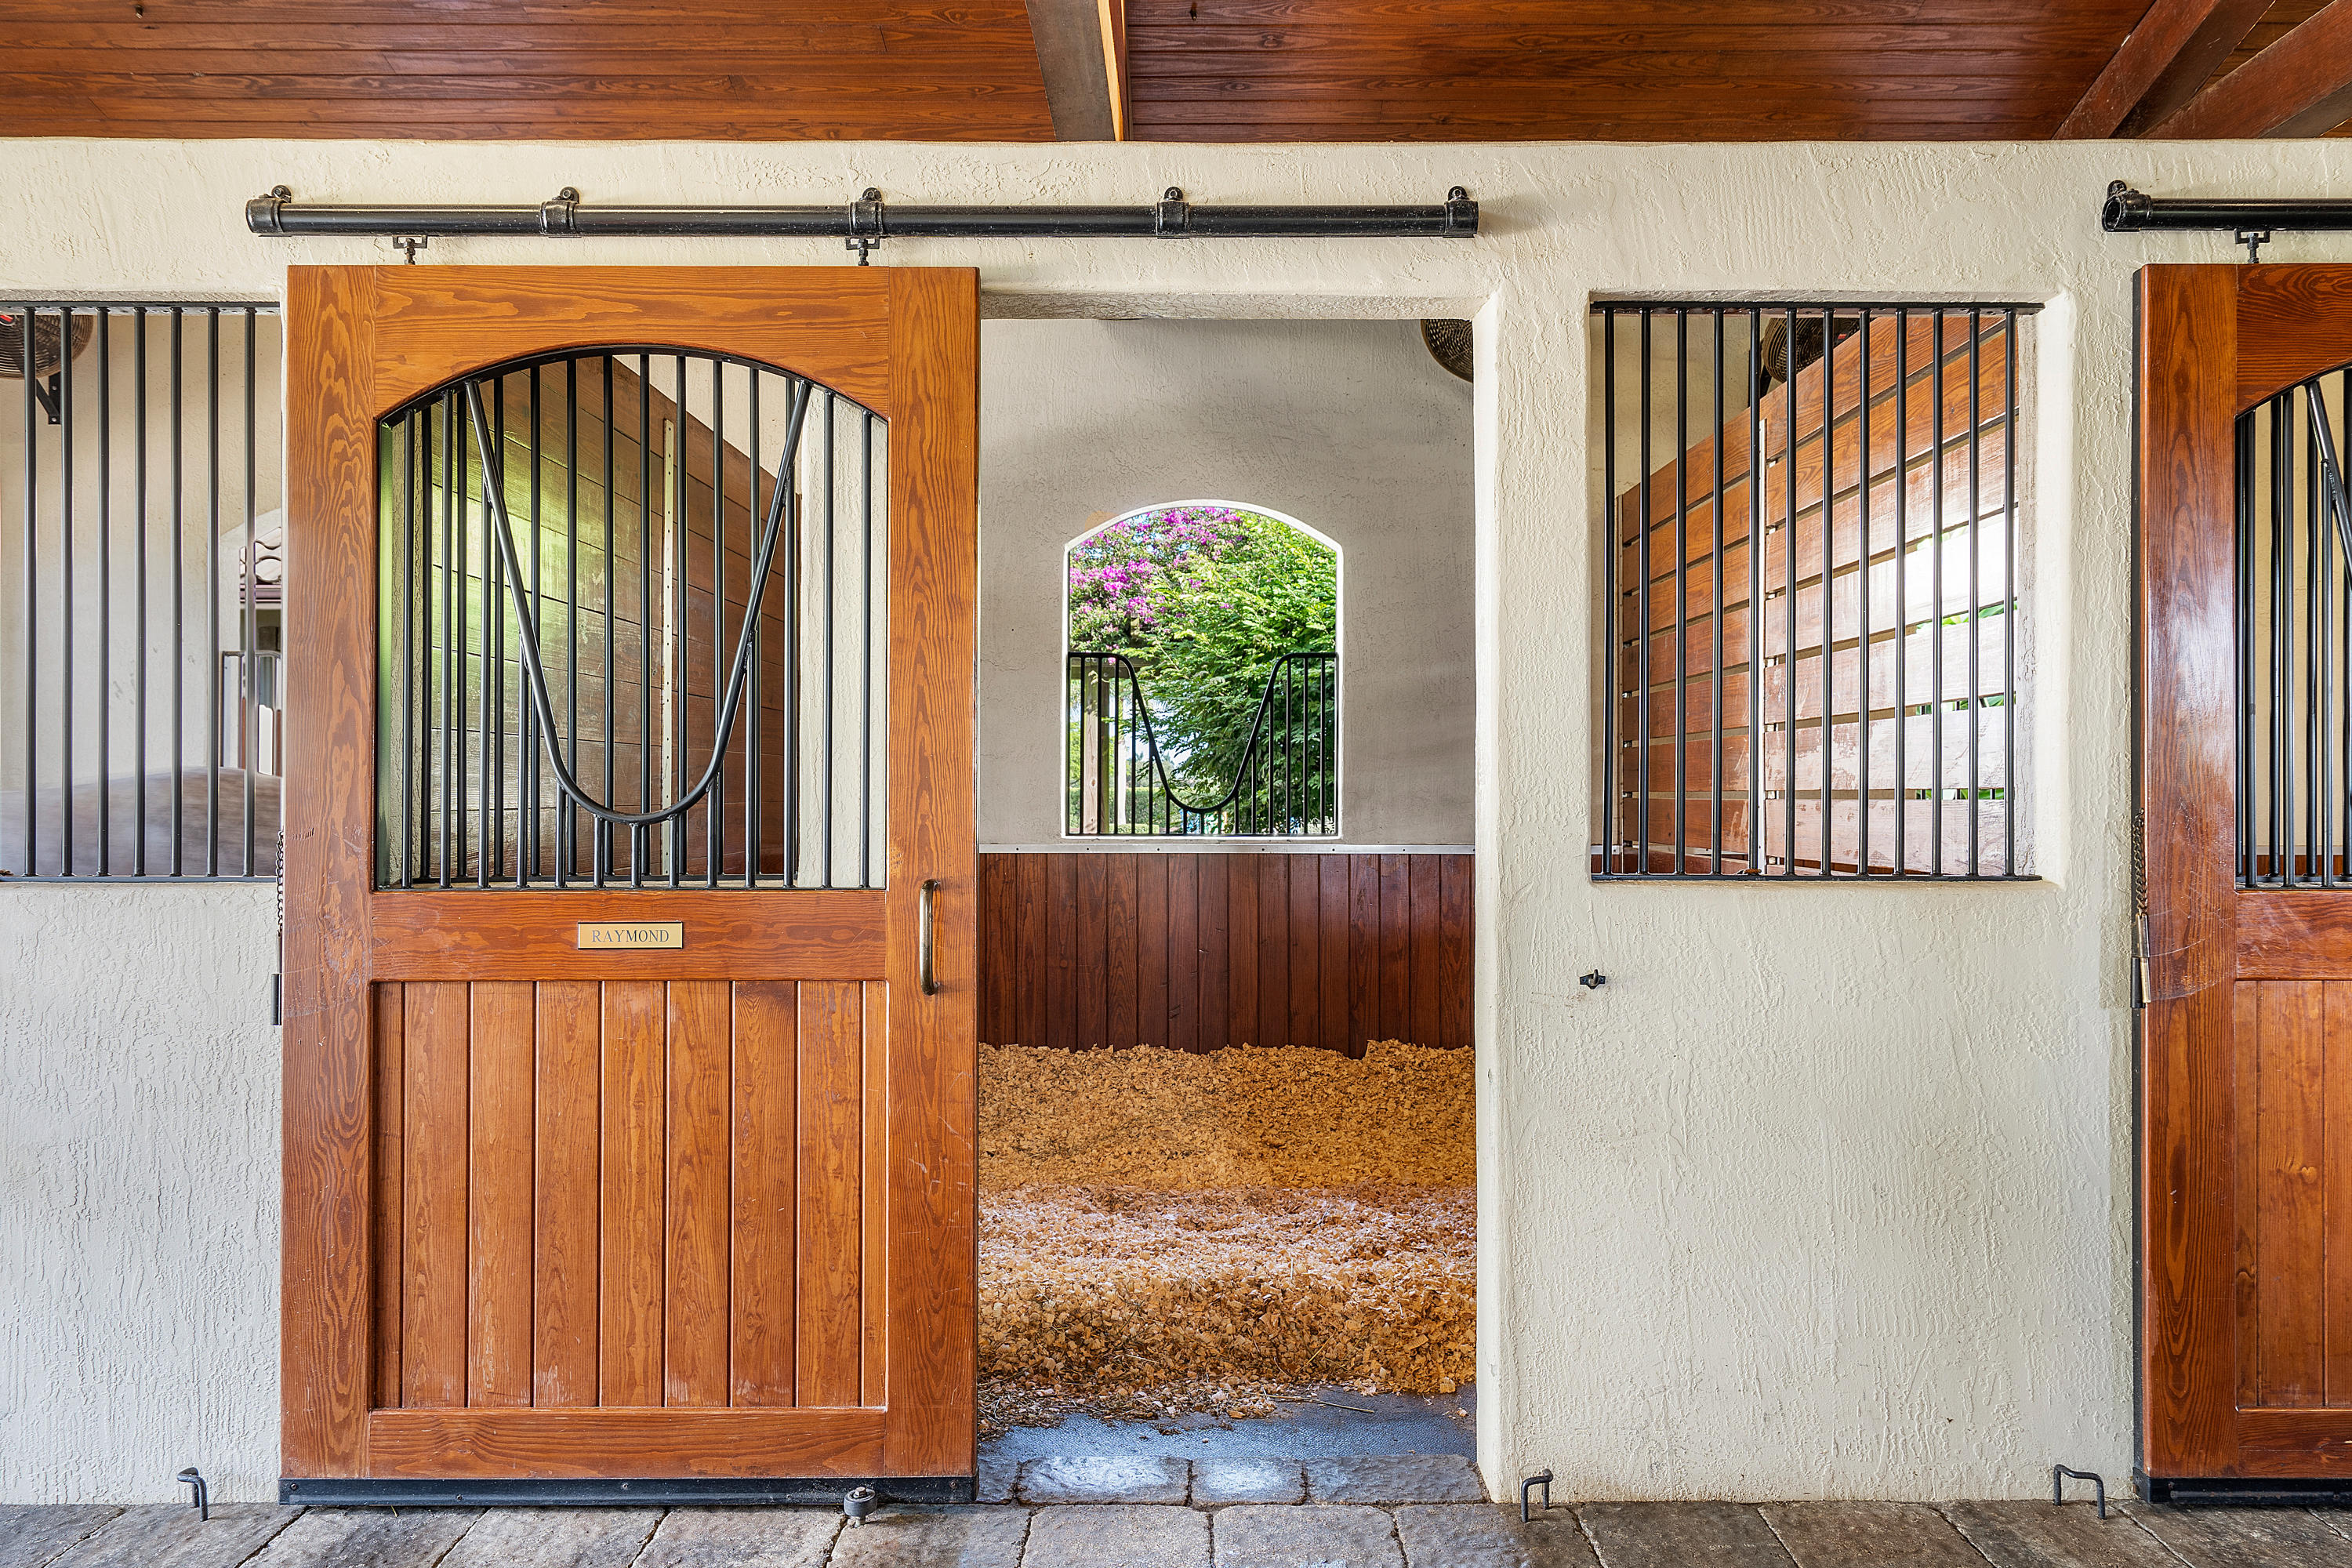 12 x 12 Matted Stalls w/Fans